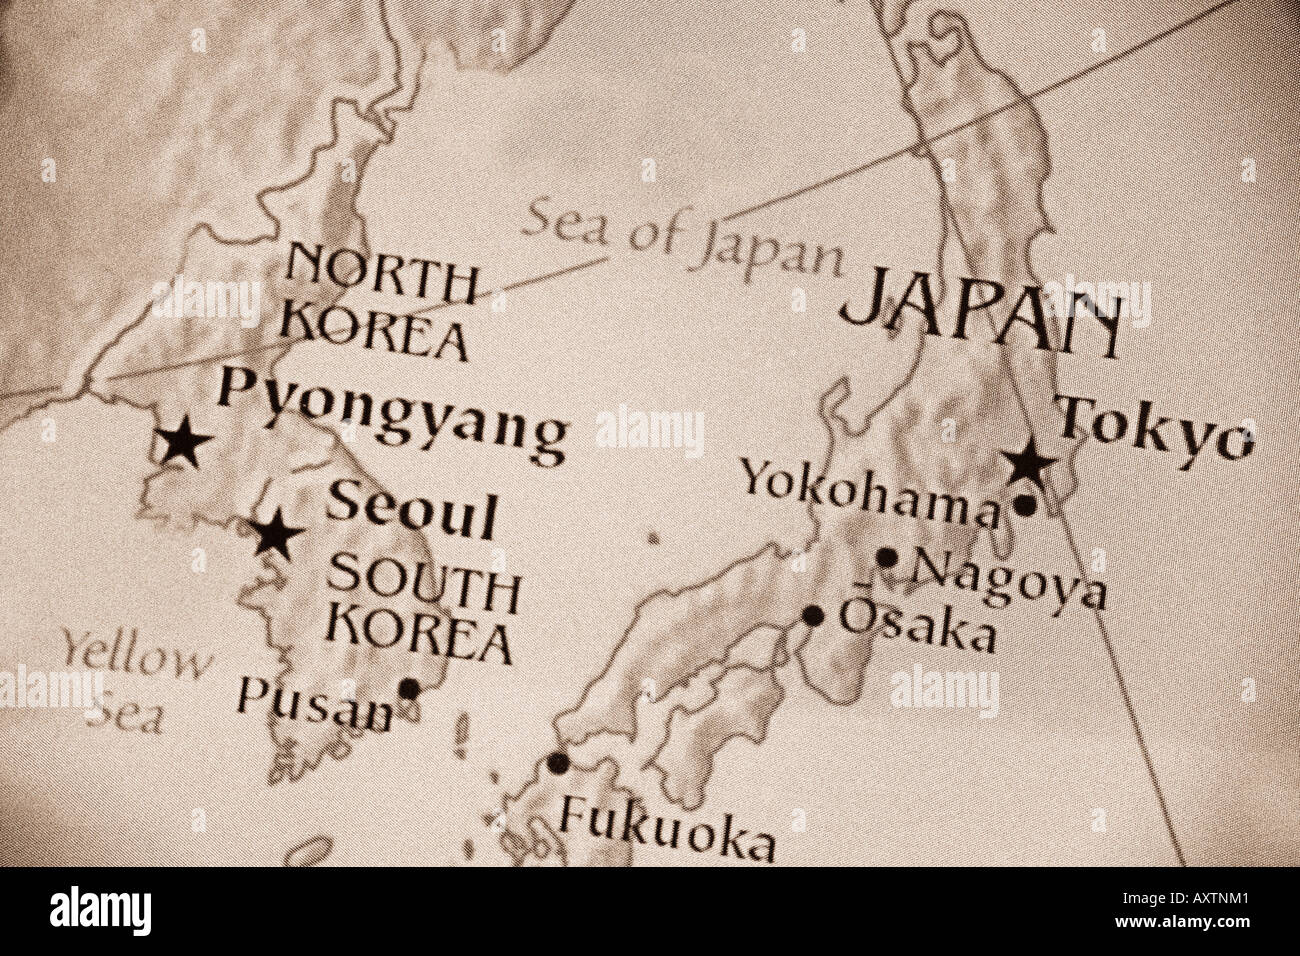 North korea map stock photos north korea map stock images alamy current map showing the countries of japan north korea south korea and the gumiabroncs Image collections